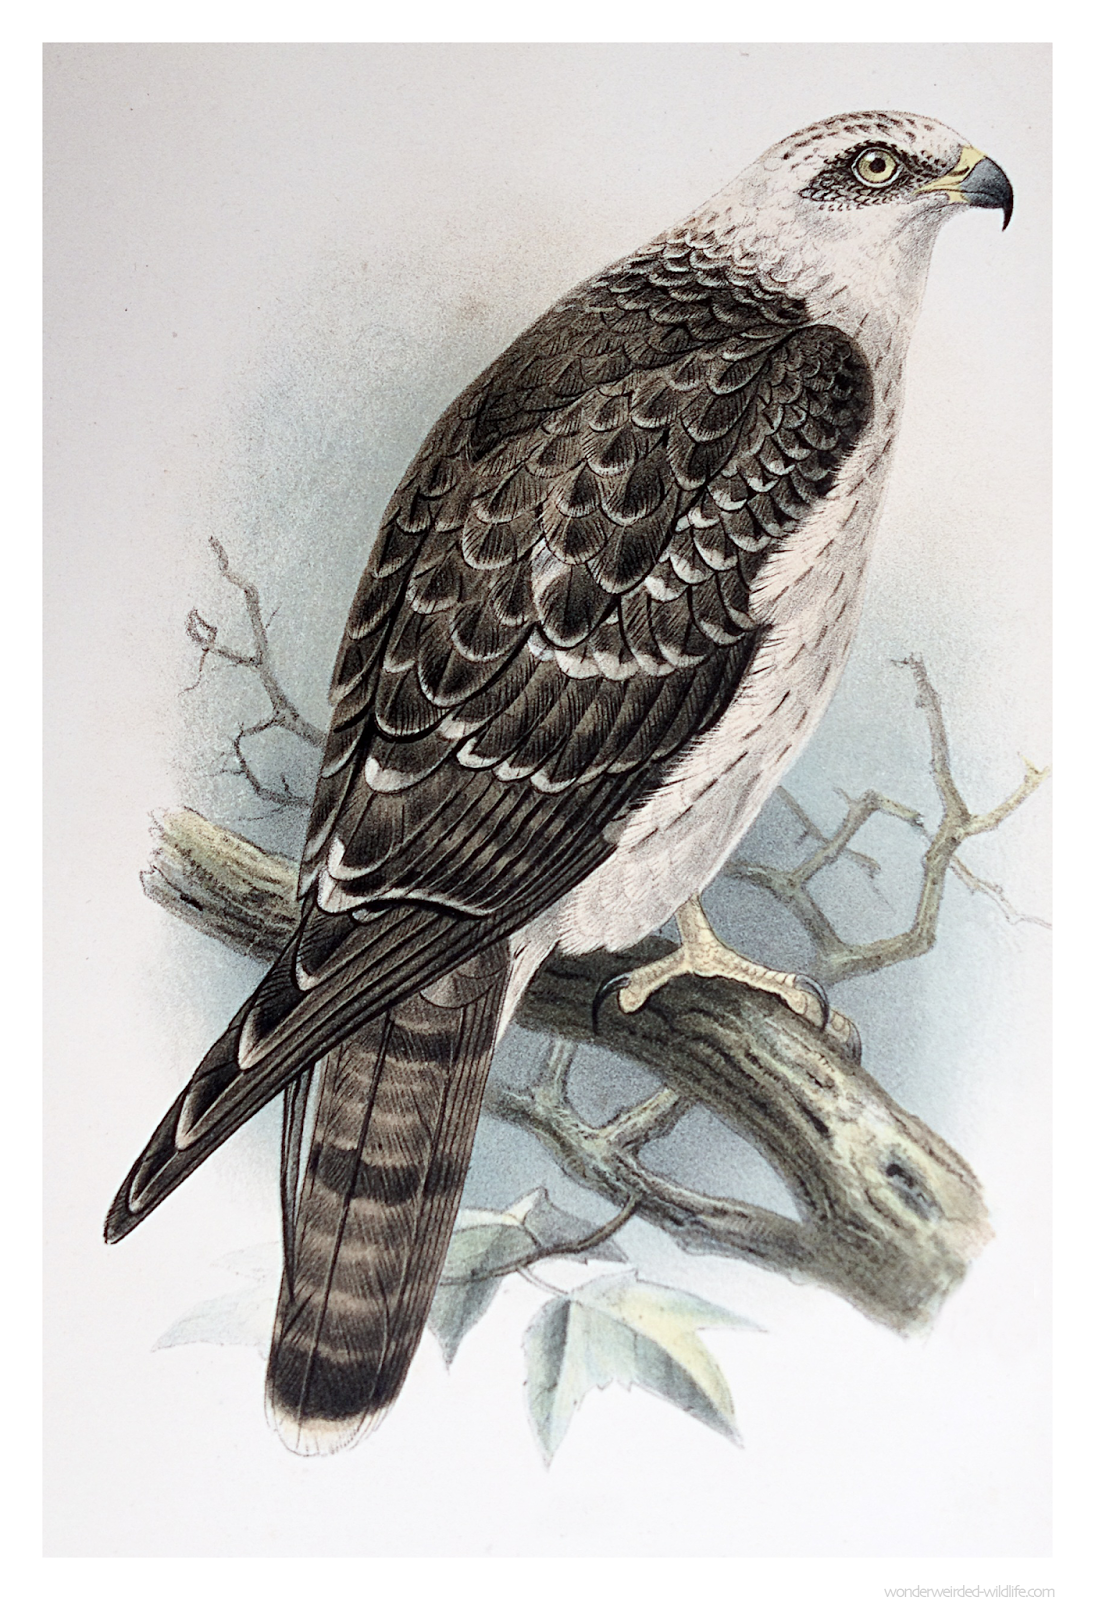 Honey Buzzard Picture - Wonderweirded Vintage Animal Illustrations